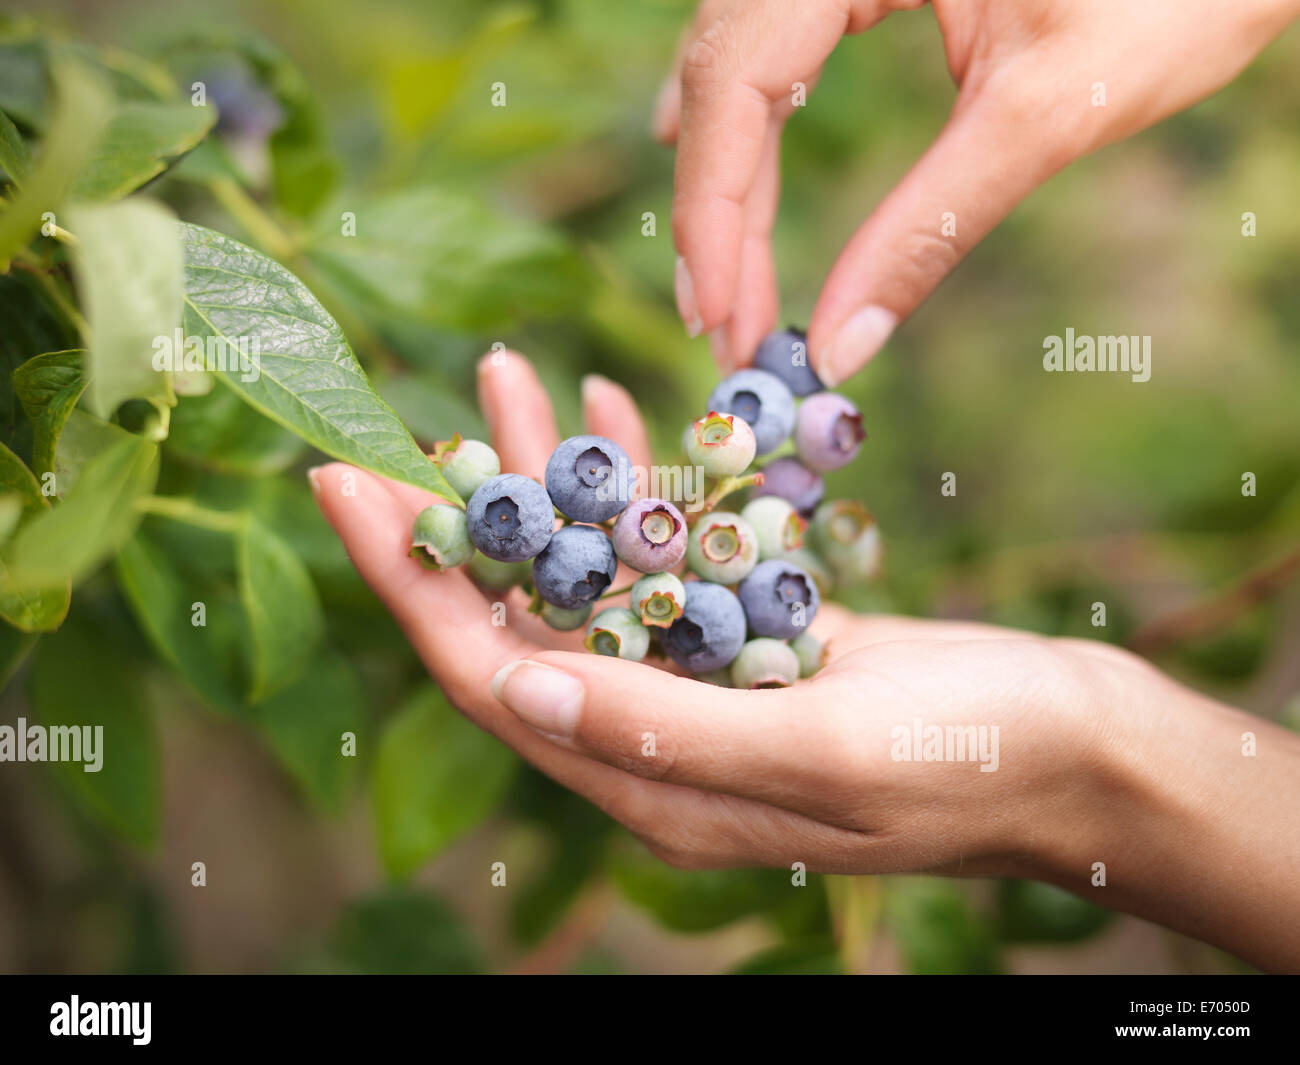 Picking blueberries on fruit farm, close up - Stock Image